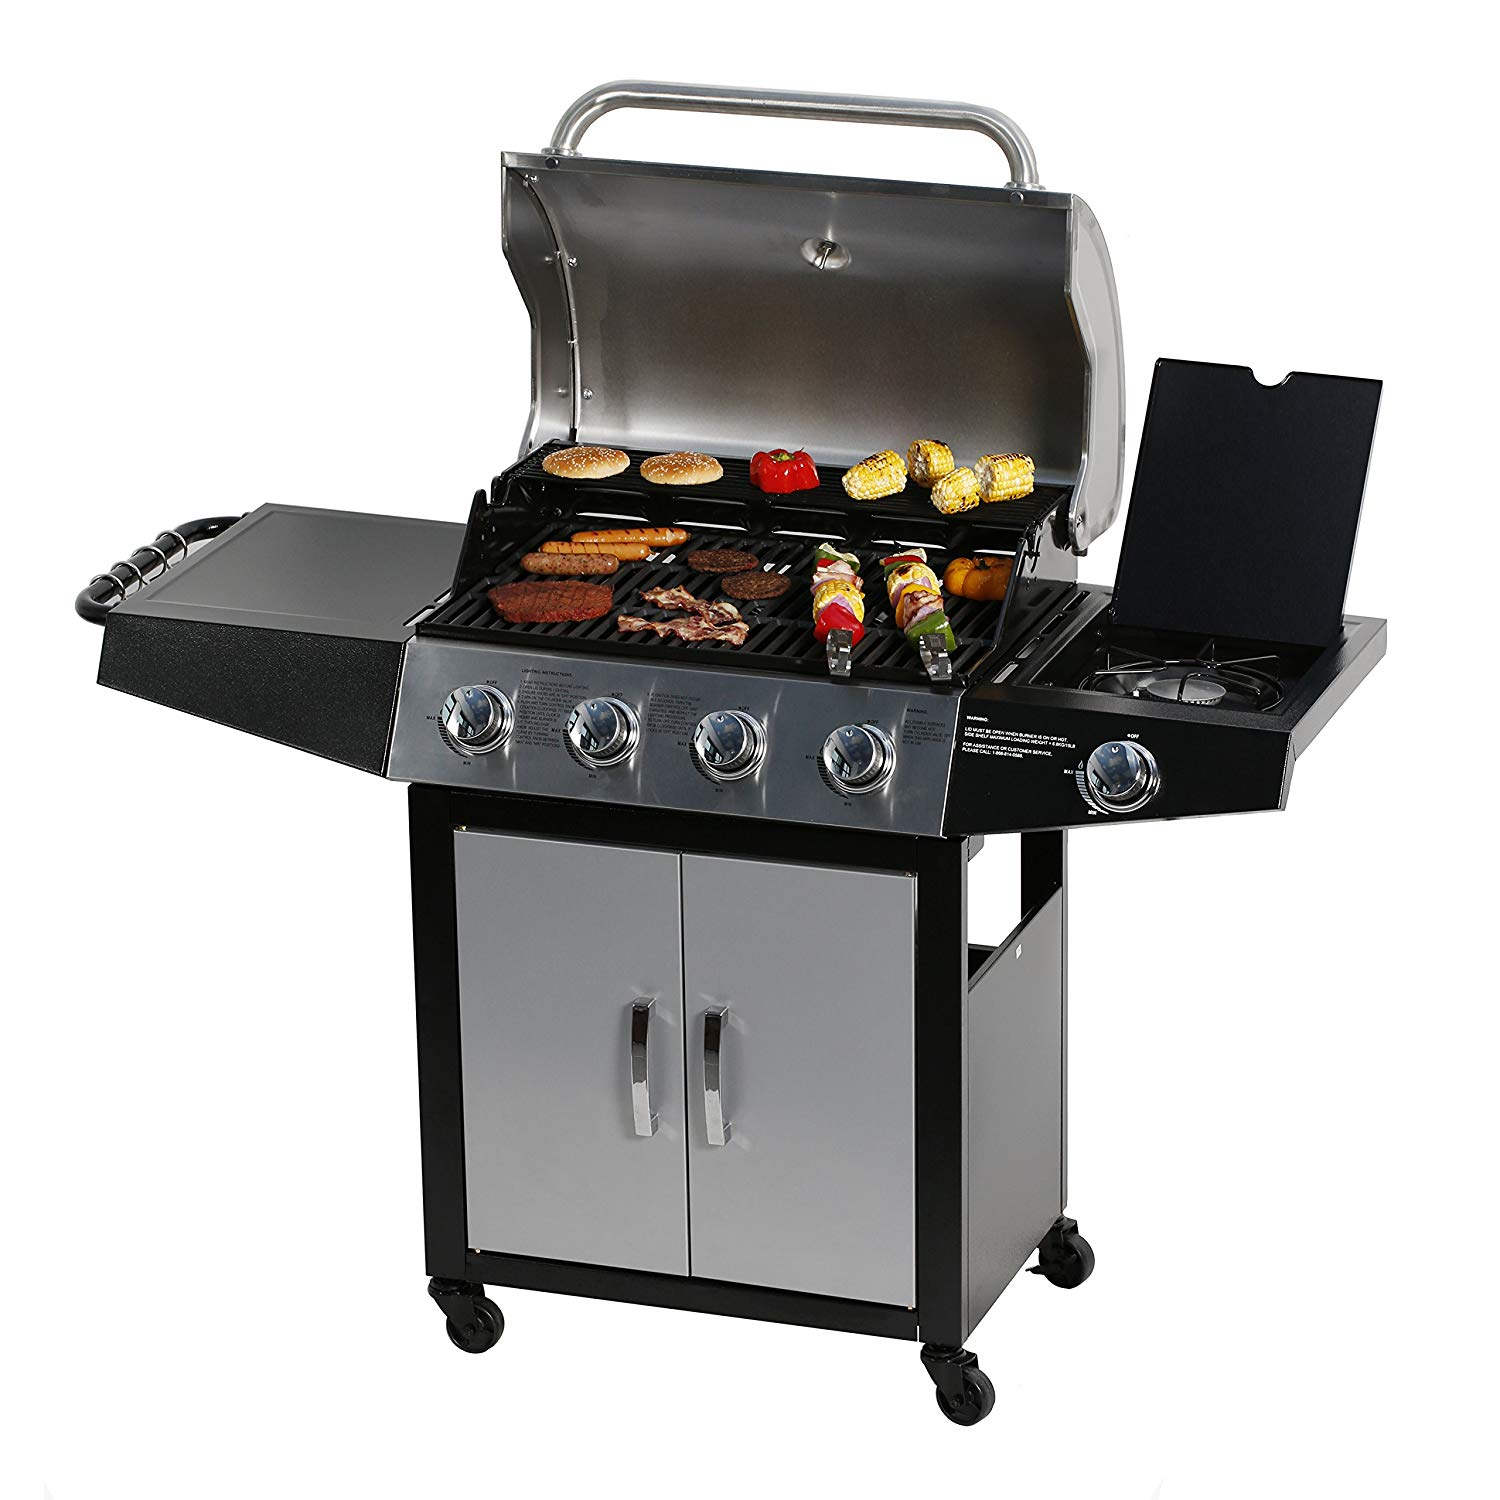 Master Cook SRGG41128 Outdoor Gas Grill Review